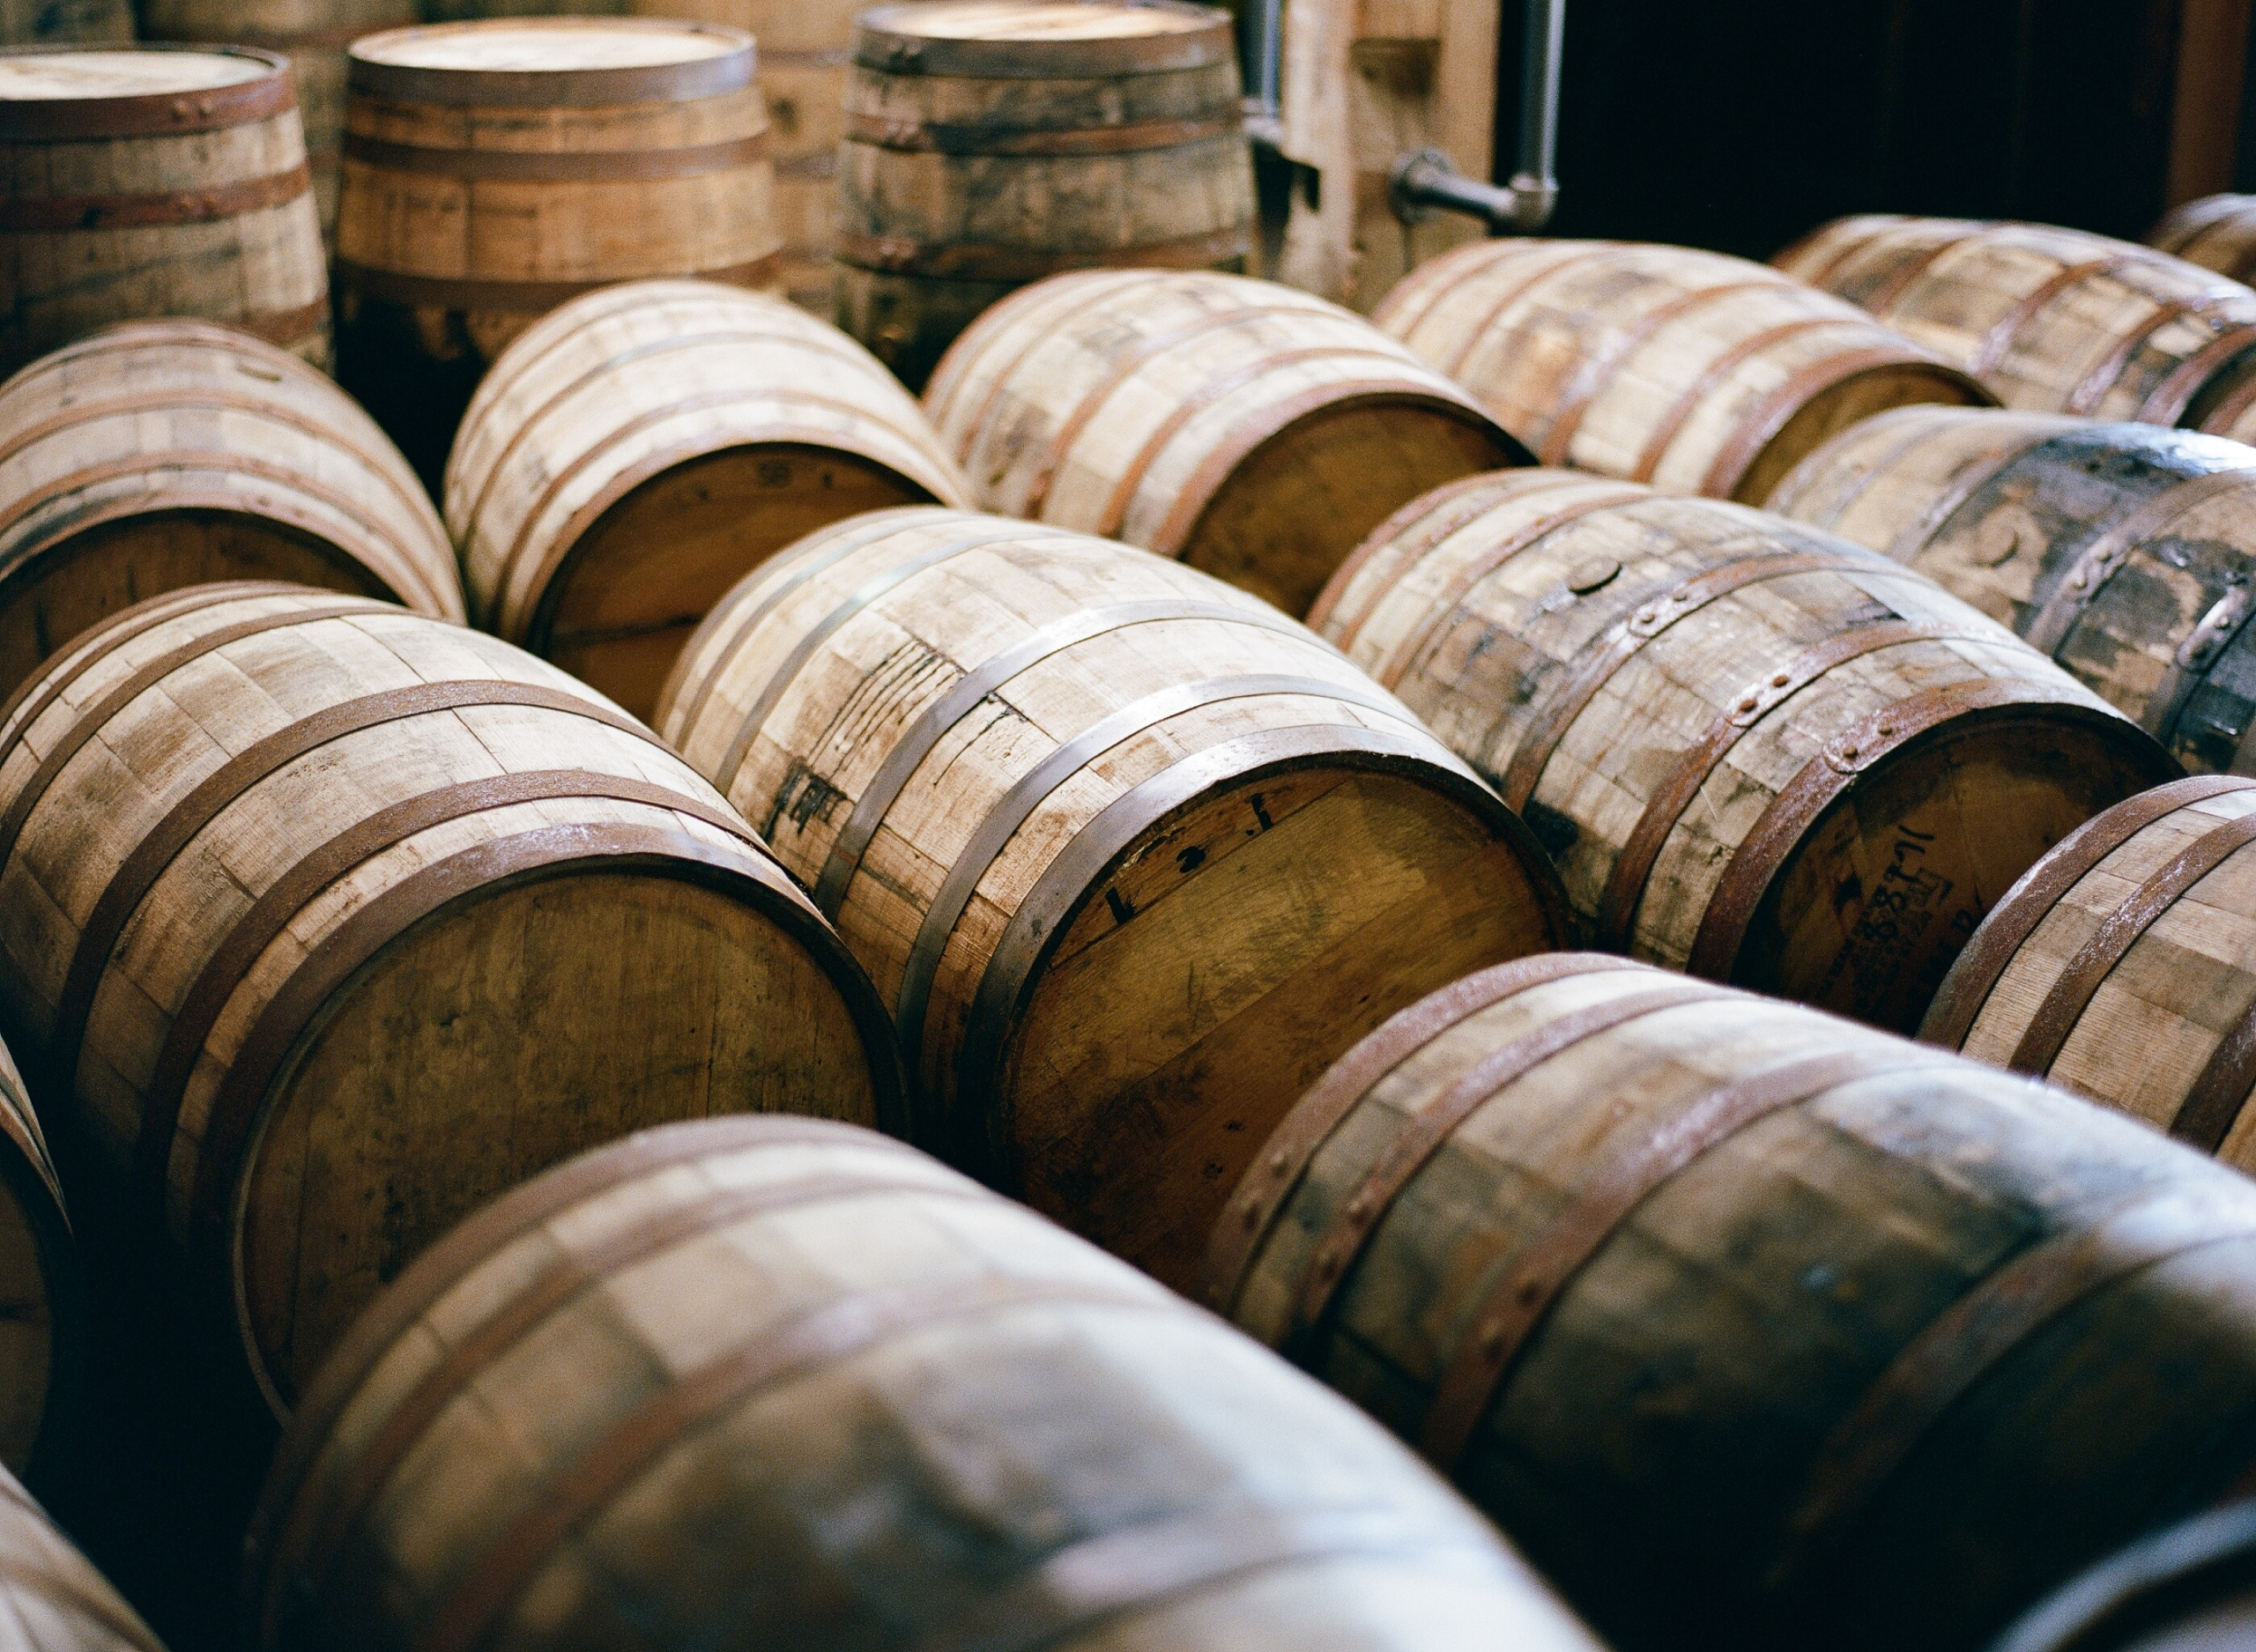 000033940013 scaled - Kentucky Now Boasts Nearly 10 Million Aging Barrels Of Bourbon and Distilled Spirits